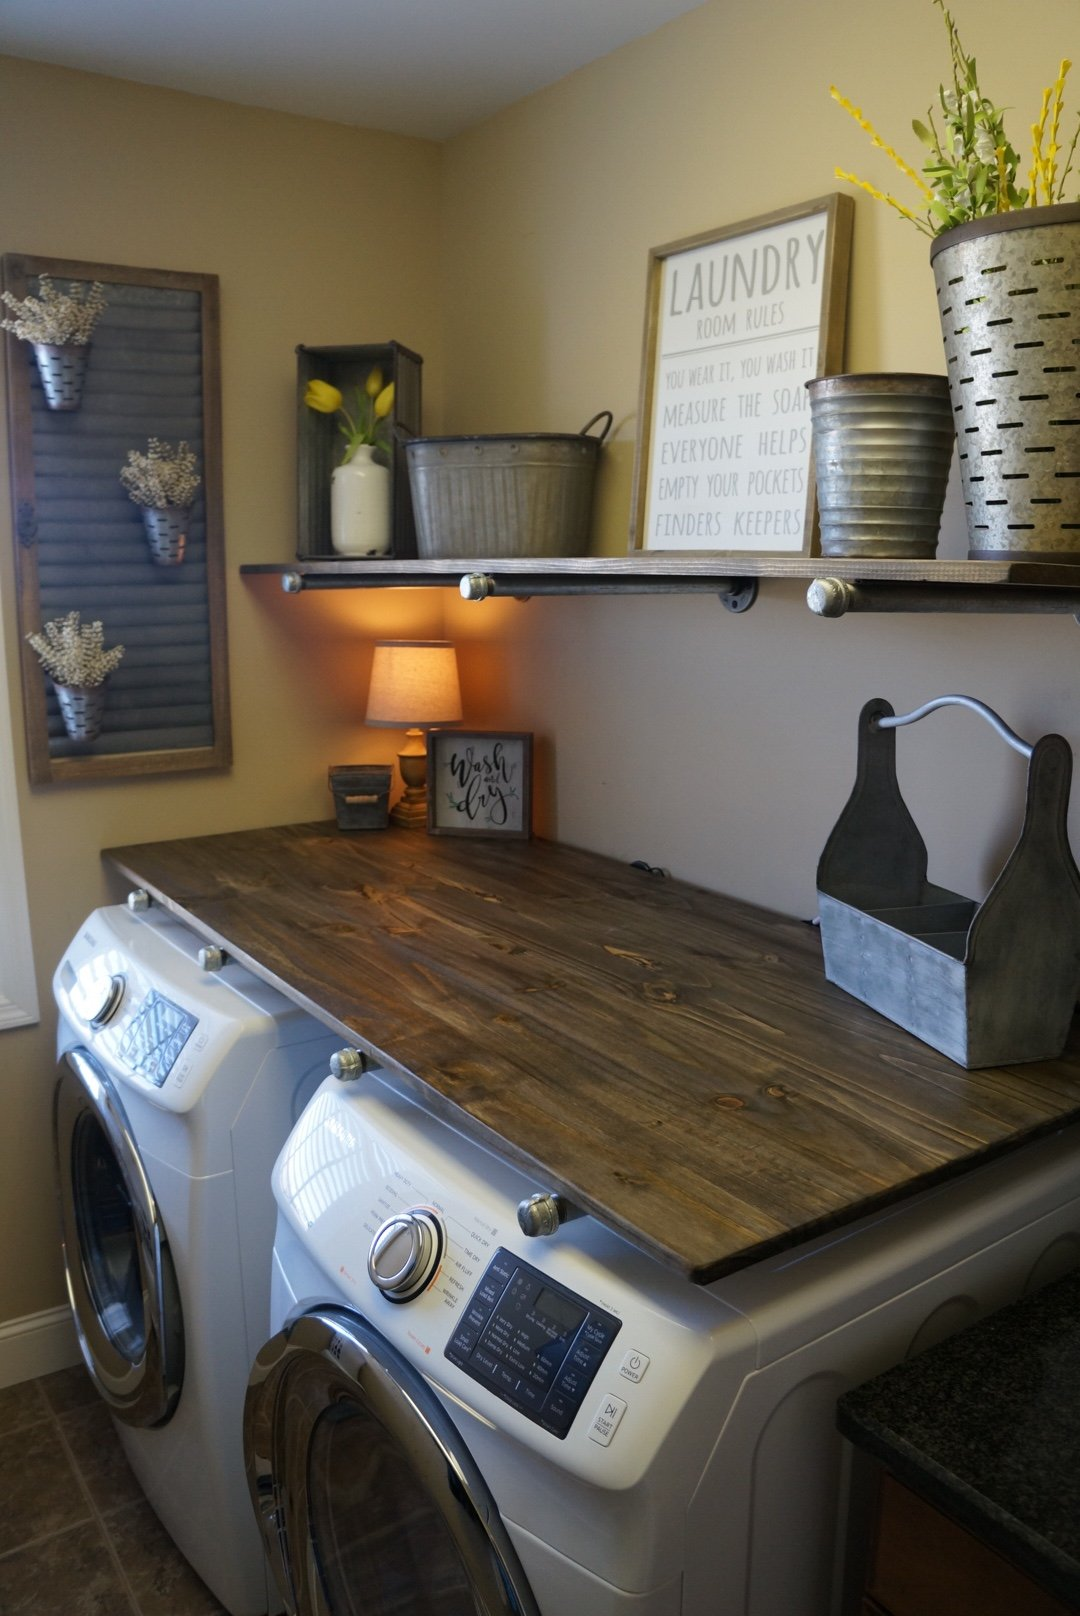 Best Kitchen Gallery: Laundry Room Makevover For Under 250 With Diy Rustic Industrial of Laundry Room Shelving  on rachelxblog.com